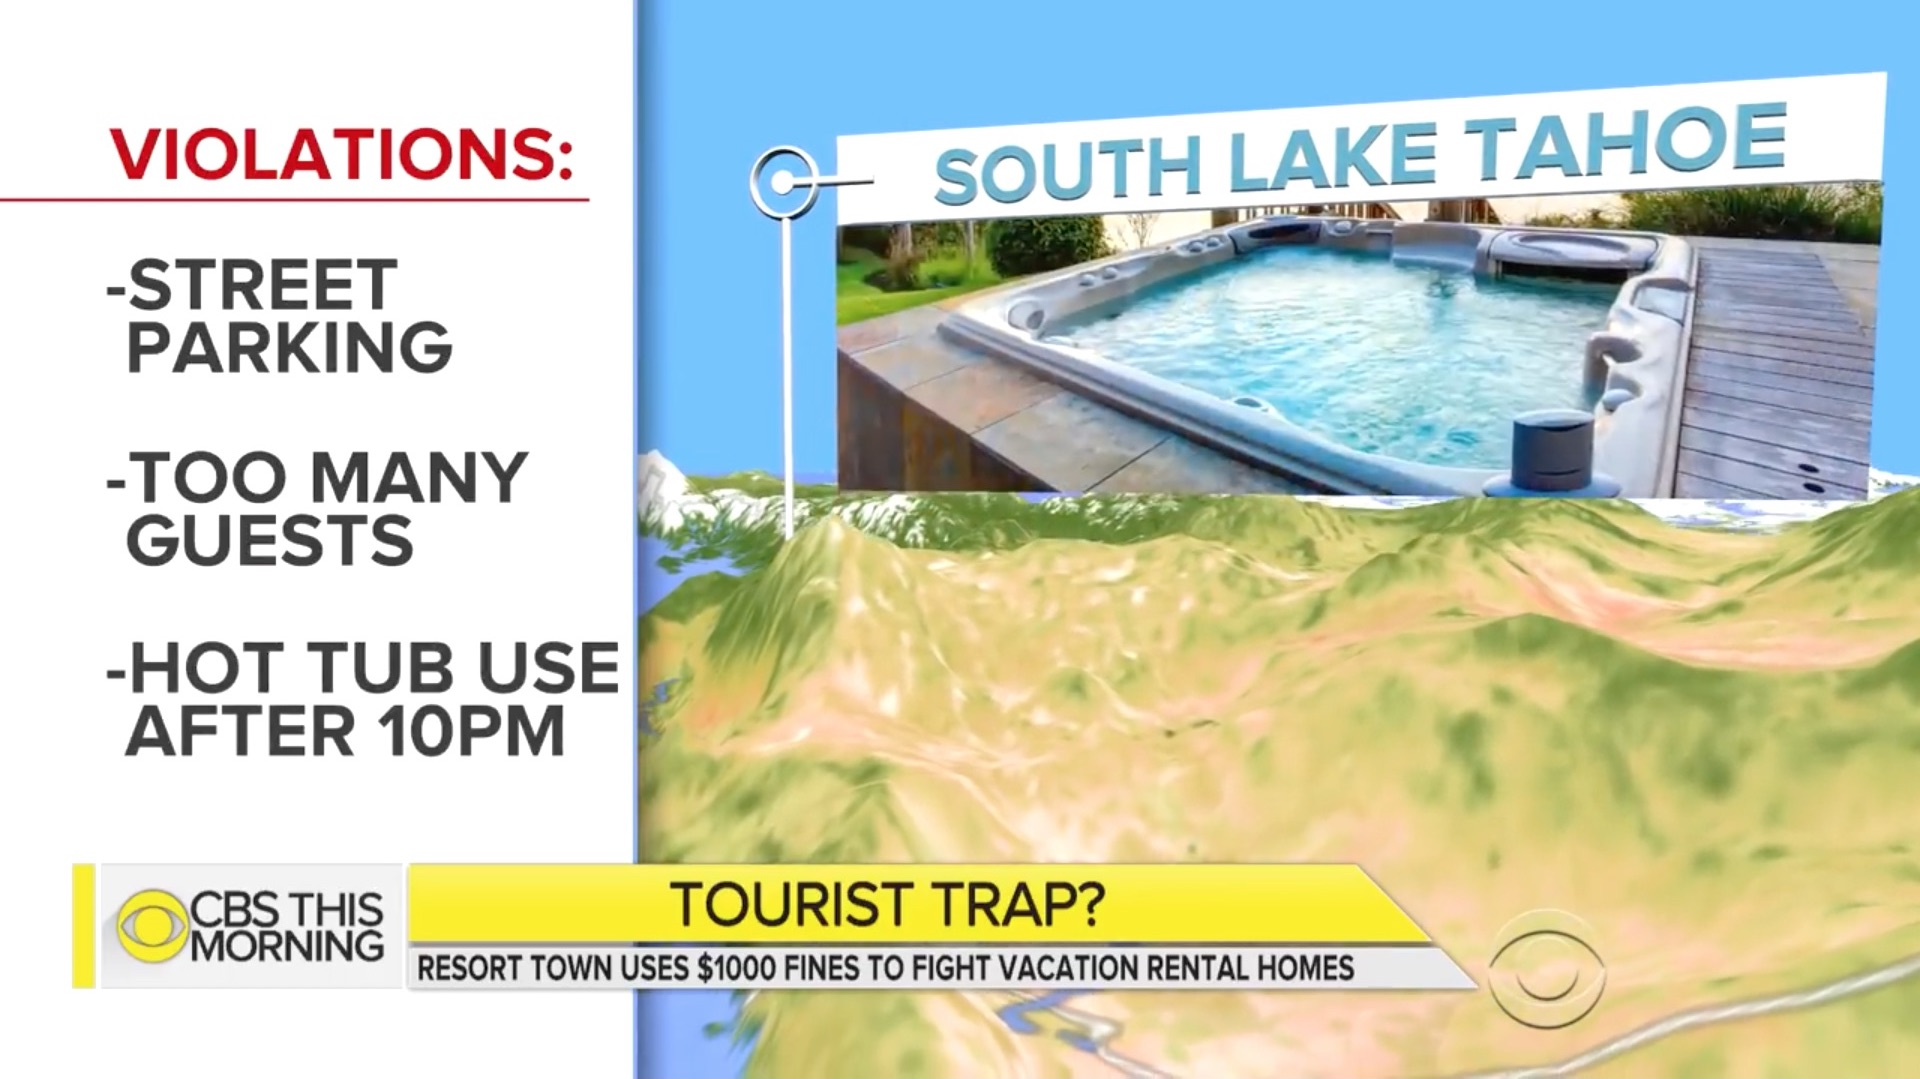 South Lake Tahoe visitors may be fined up to $1,000 for noise and